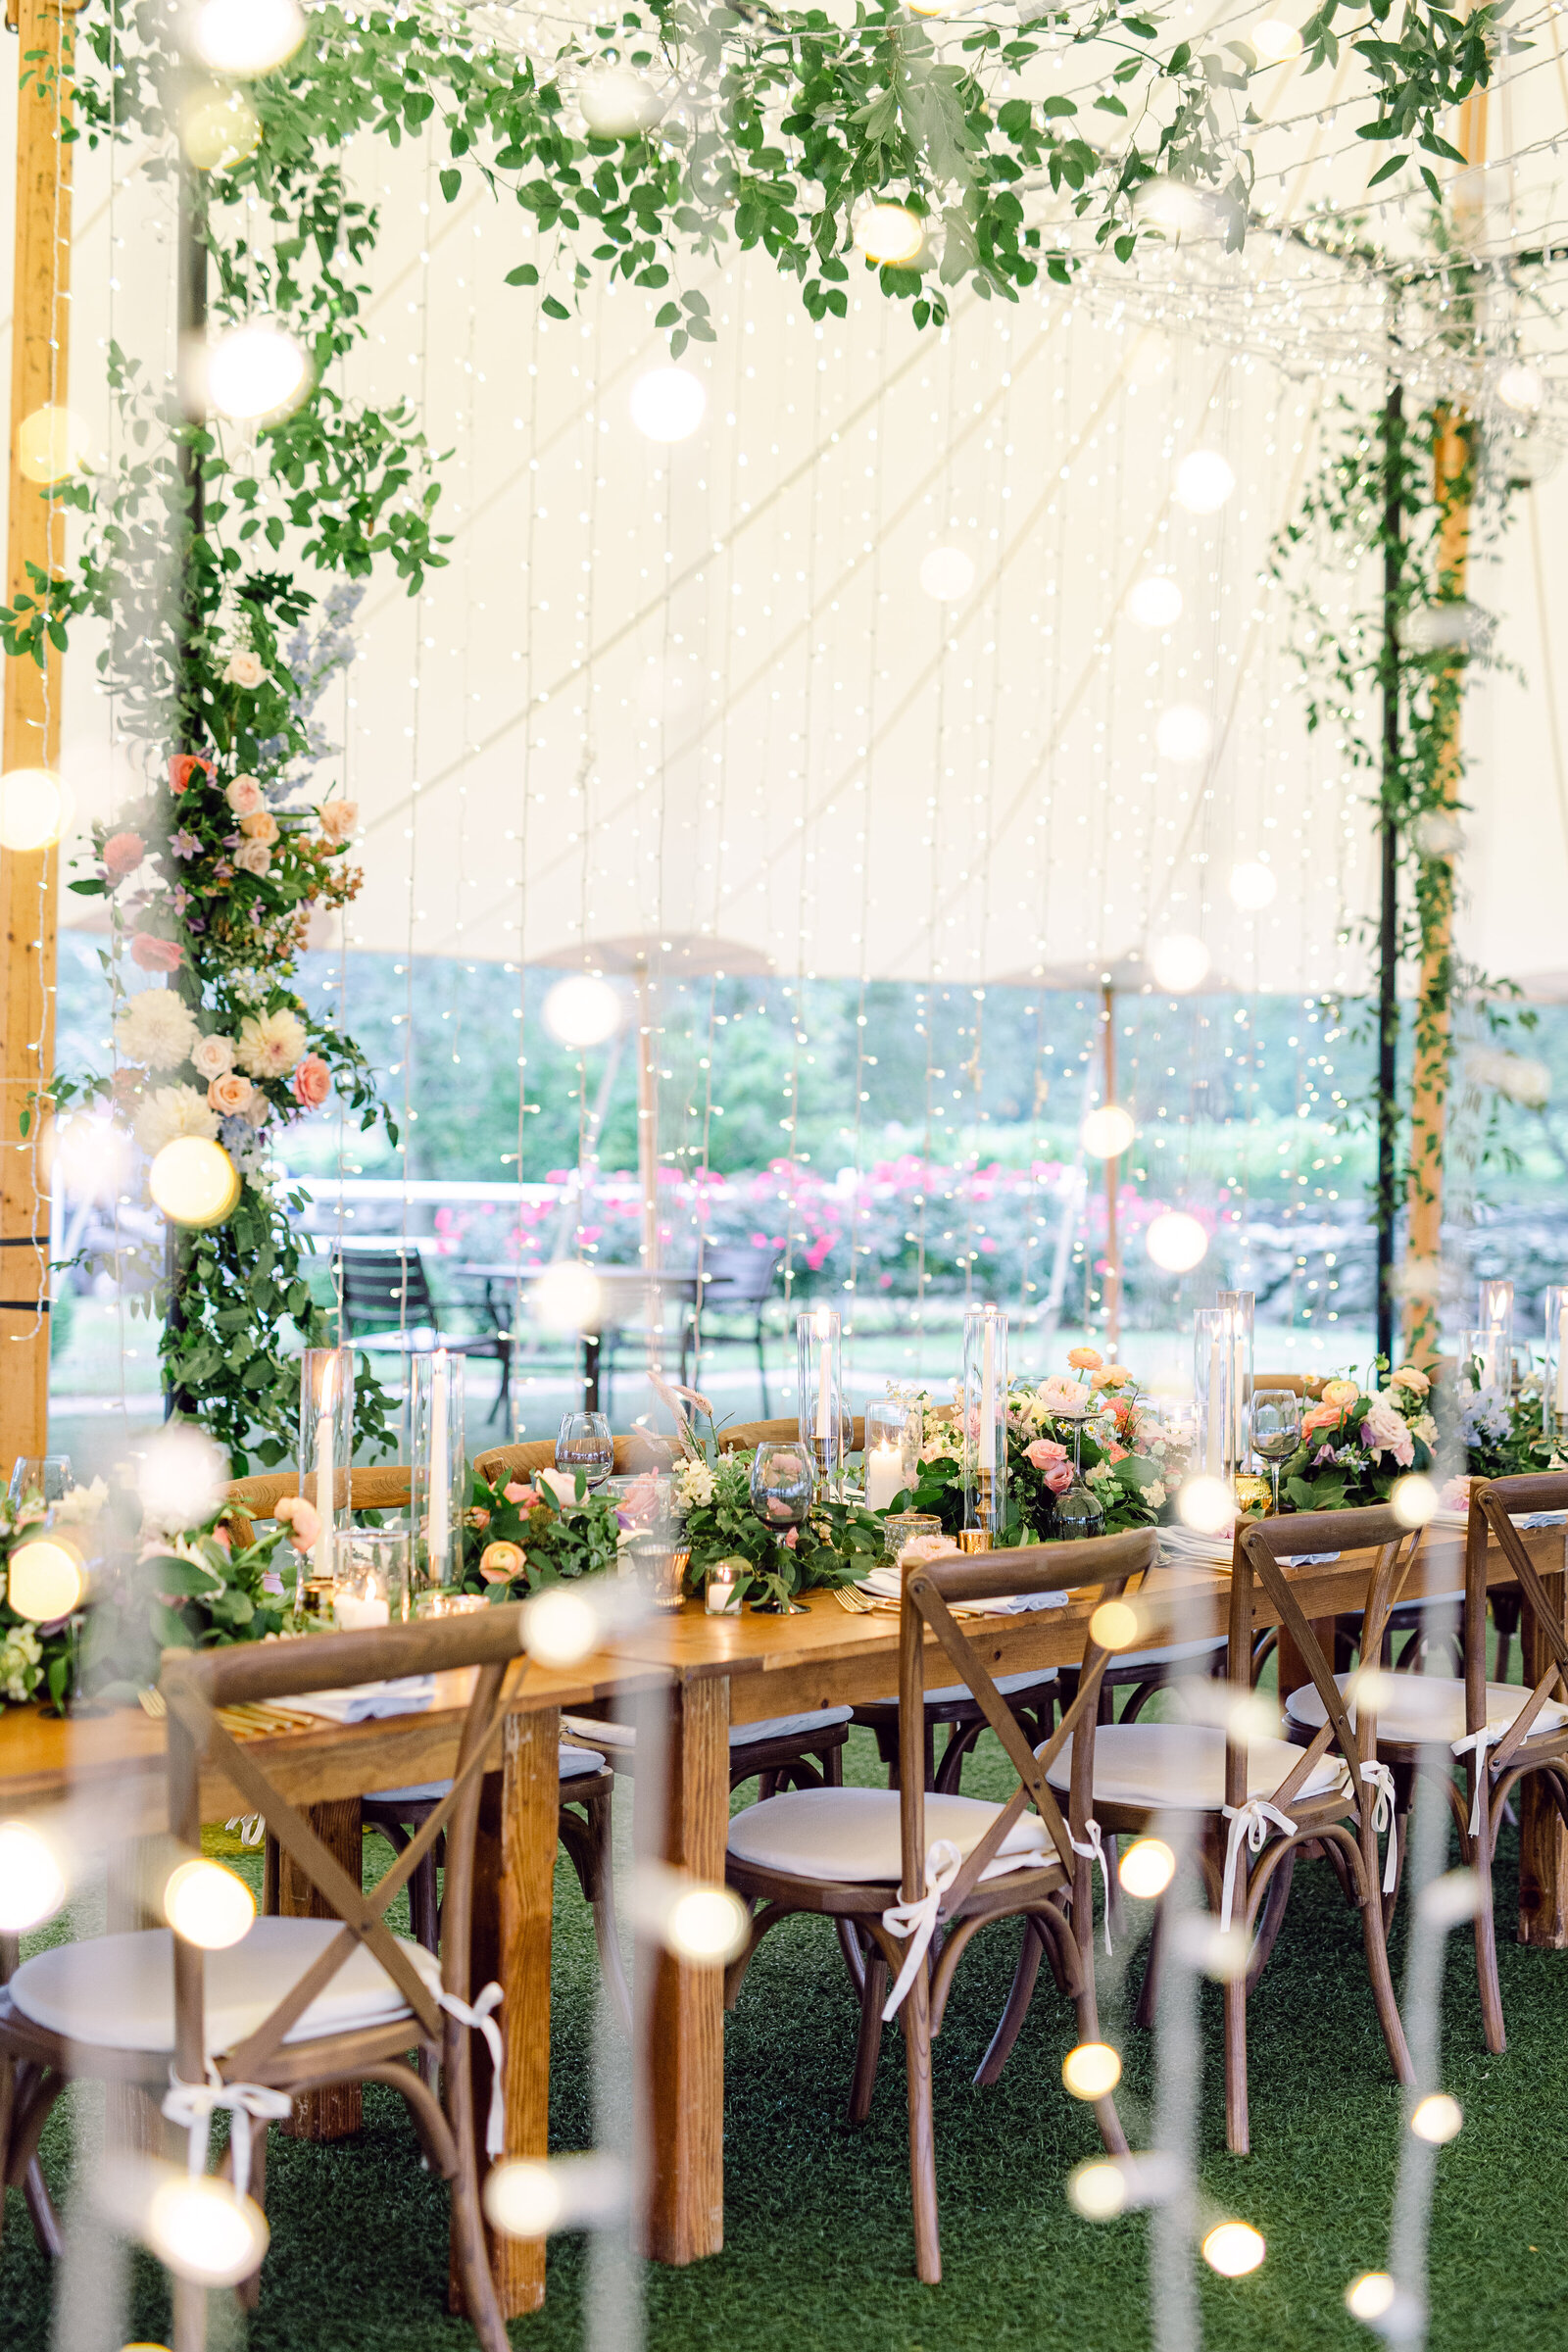 jonathan_edwards_winery_stonington_connecticut_garden_wedding_twinkle_lights